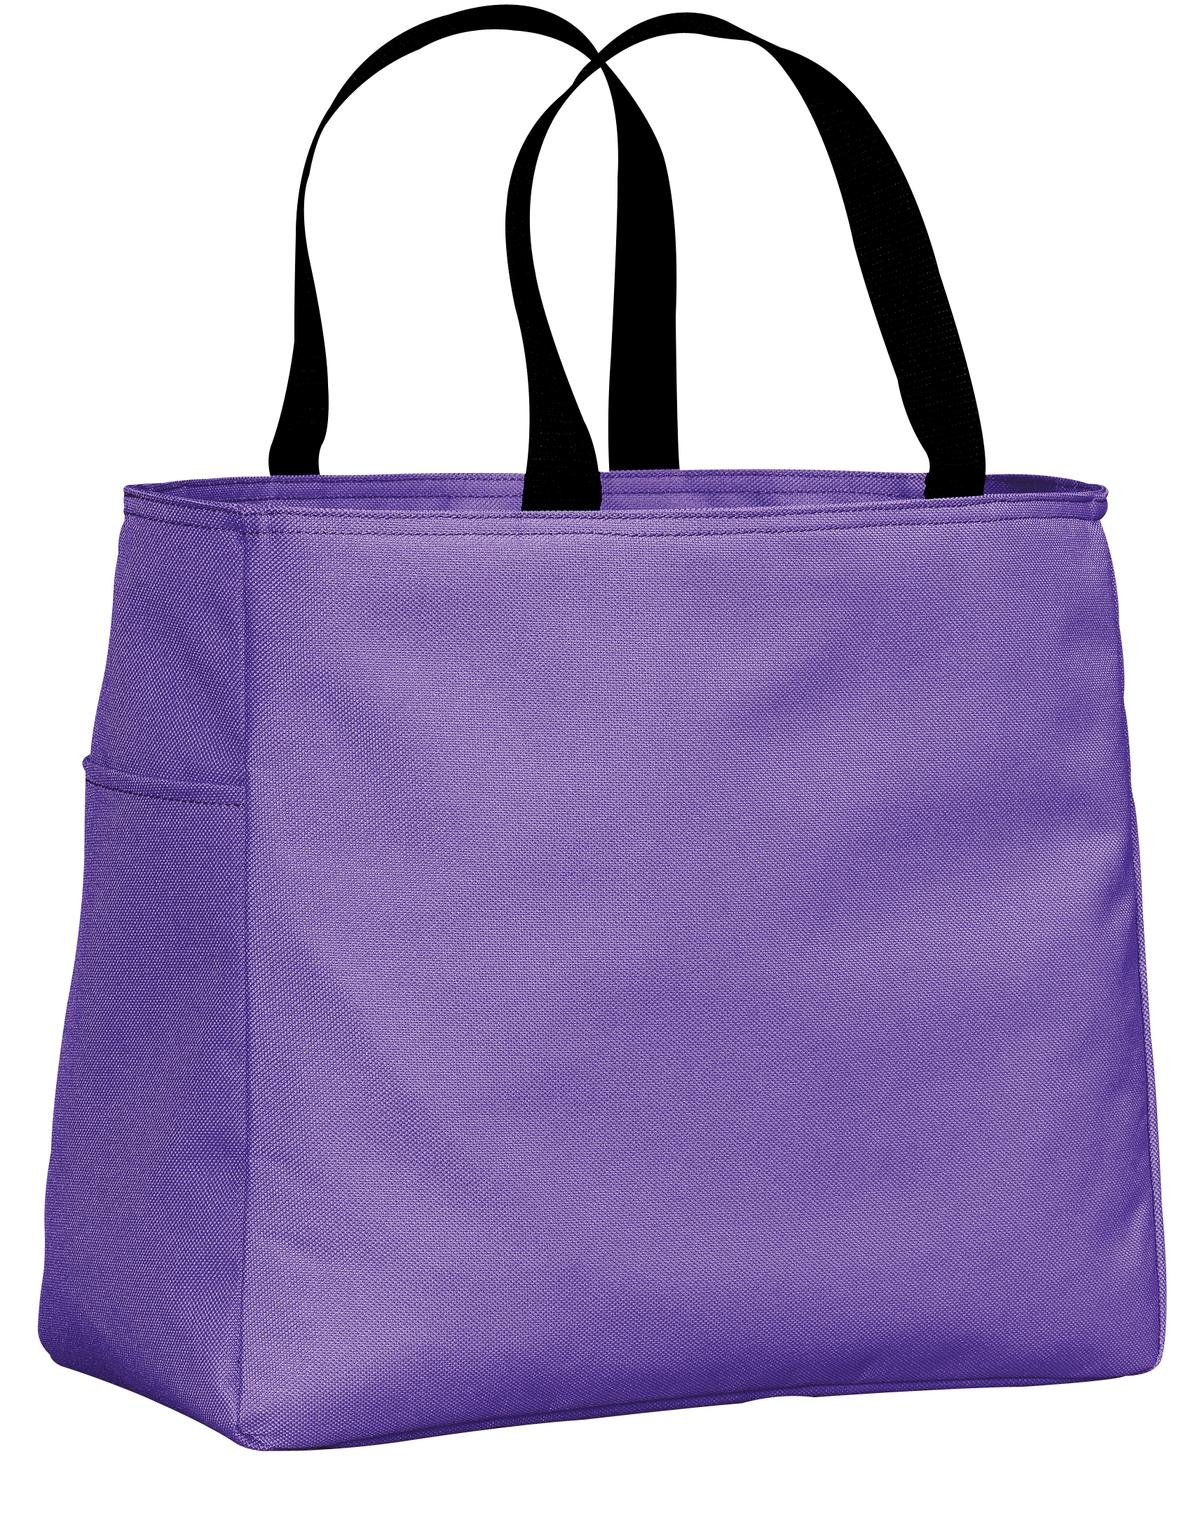 Port Authority ®  -  Essential Tote.  B0750 - Hyacinth